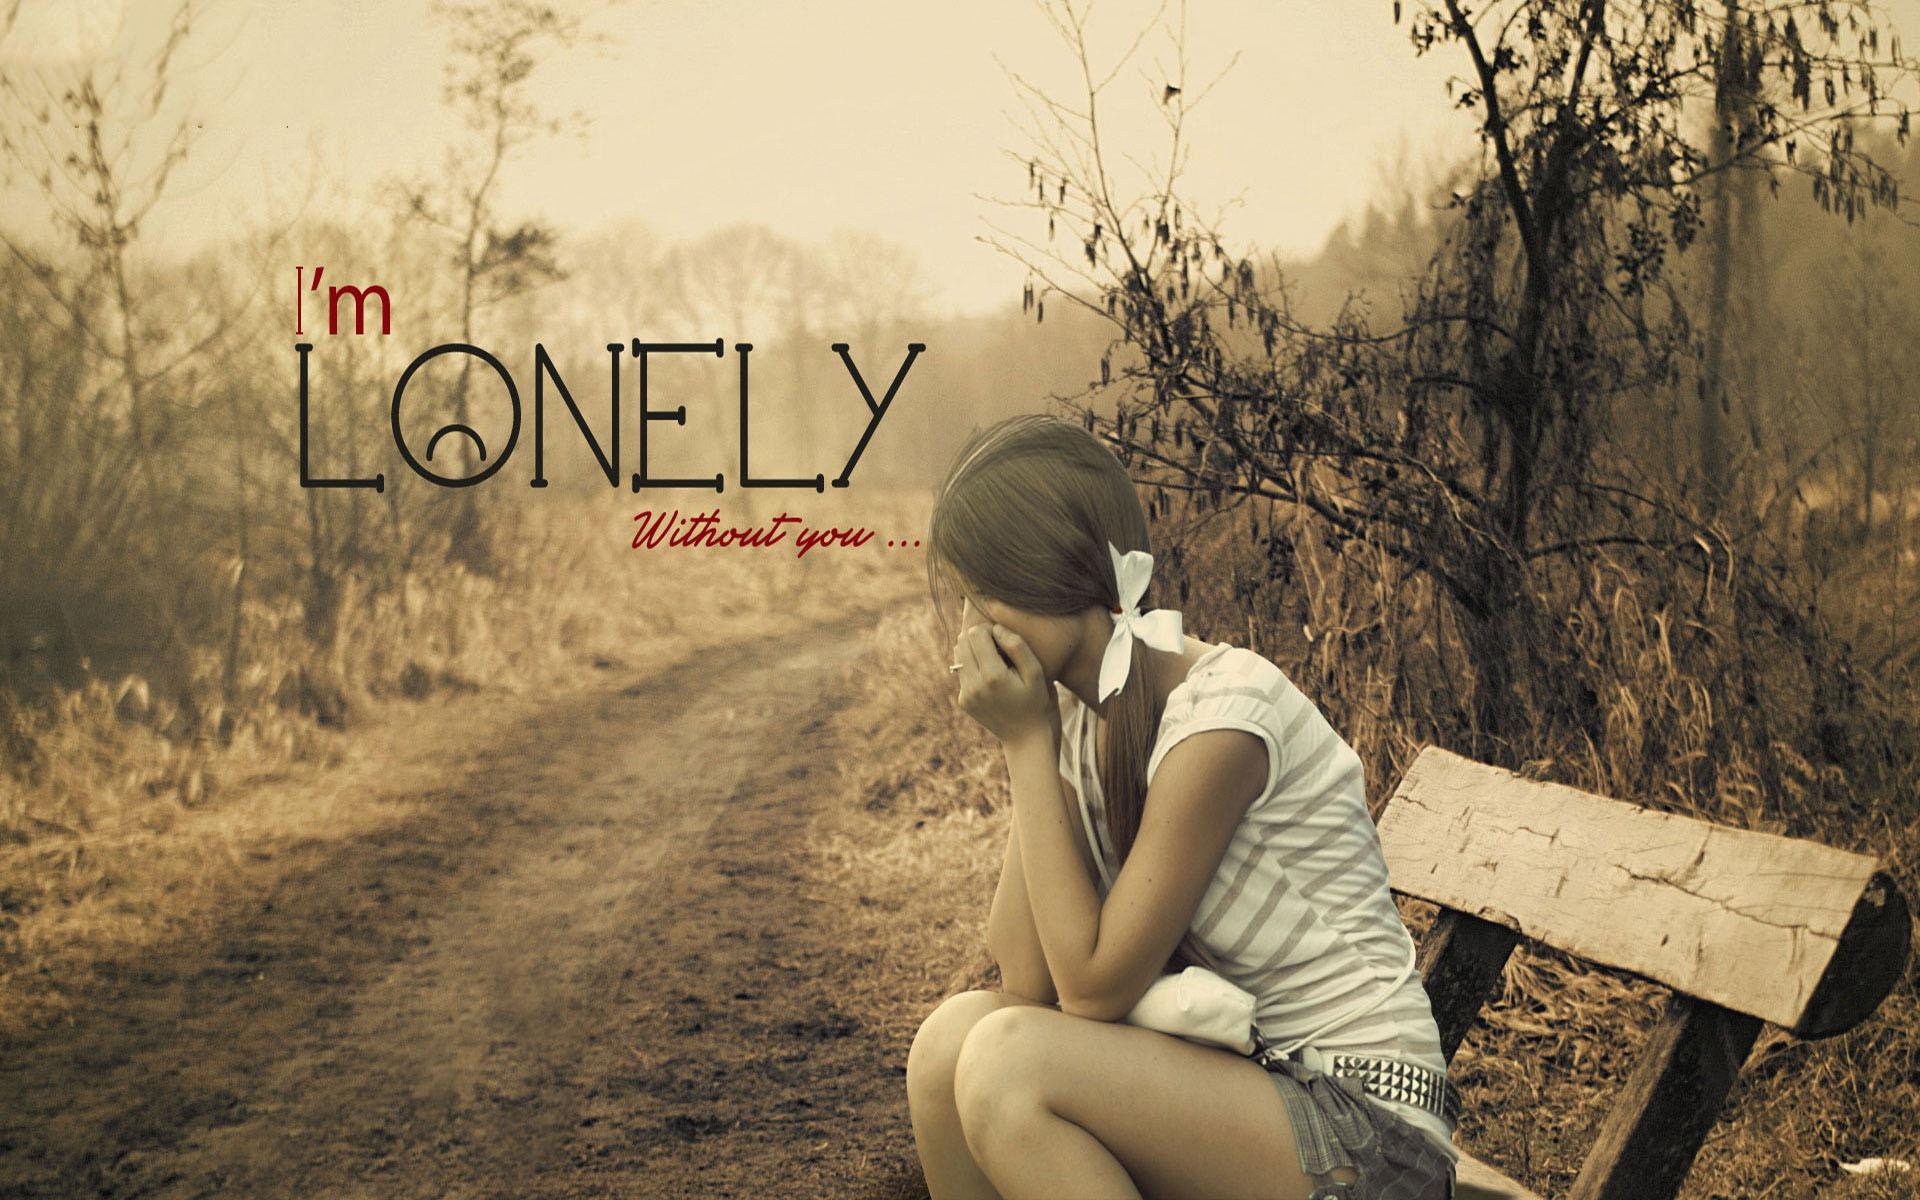 Teen love loneliness